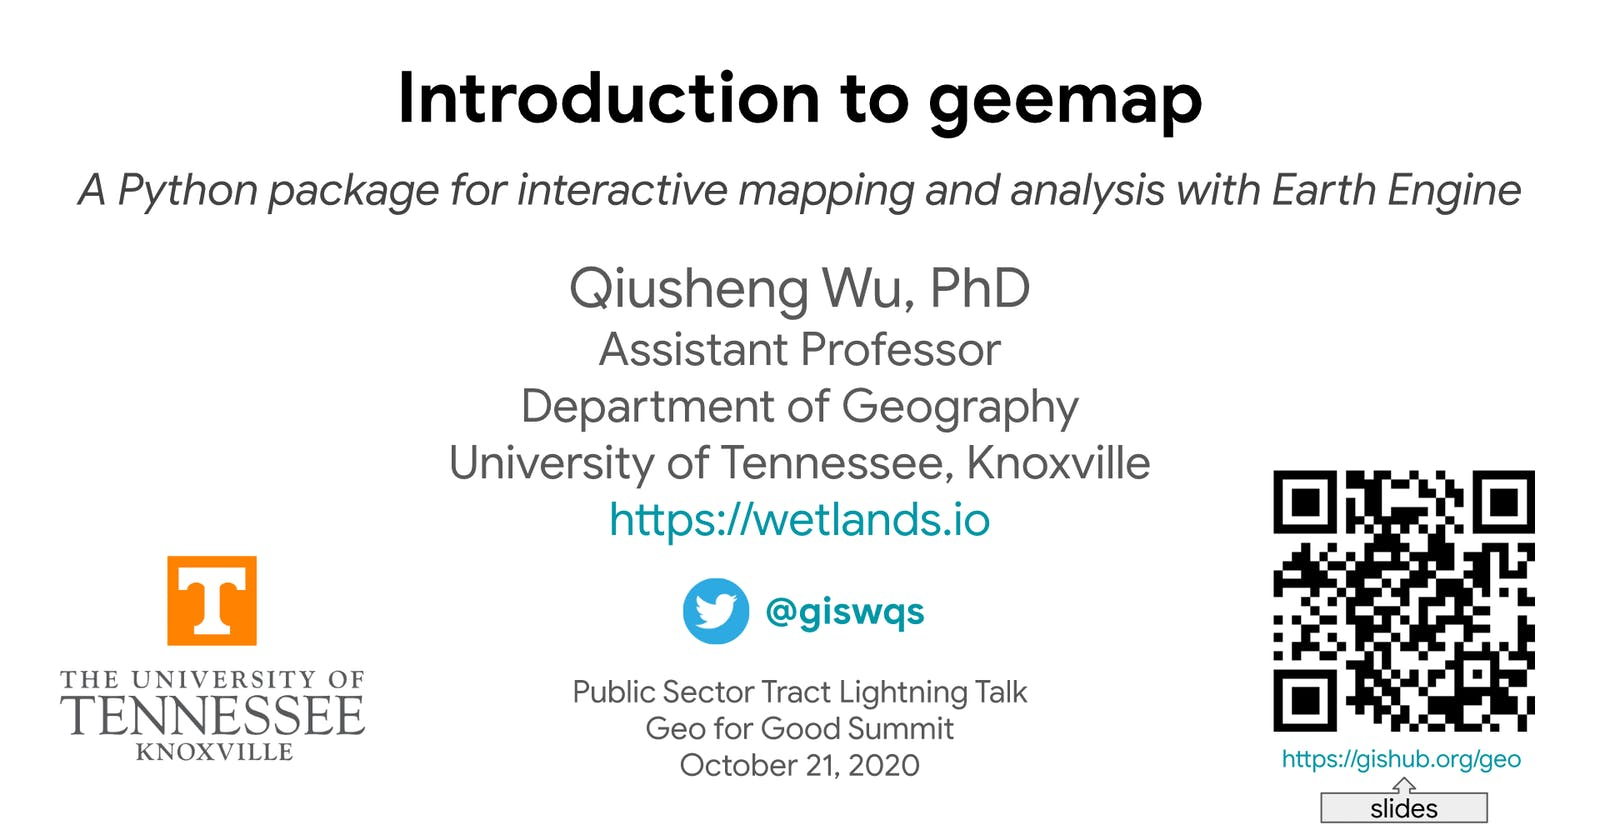 Geo for Good Summit 2020 Public Sector Meetup - Introduction to geemap